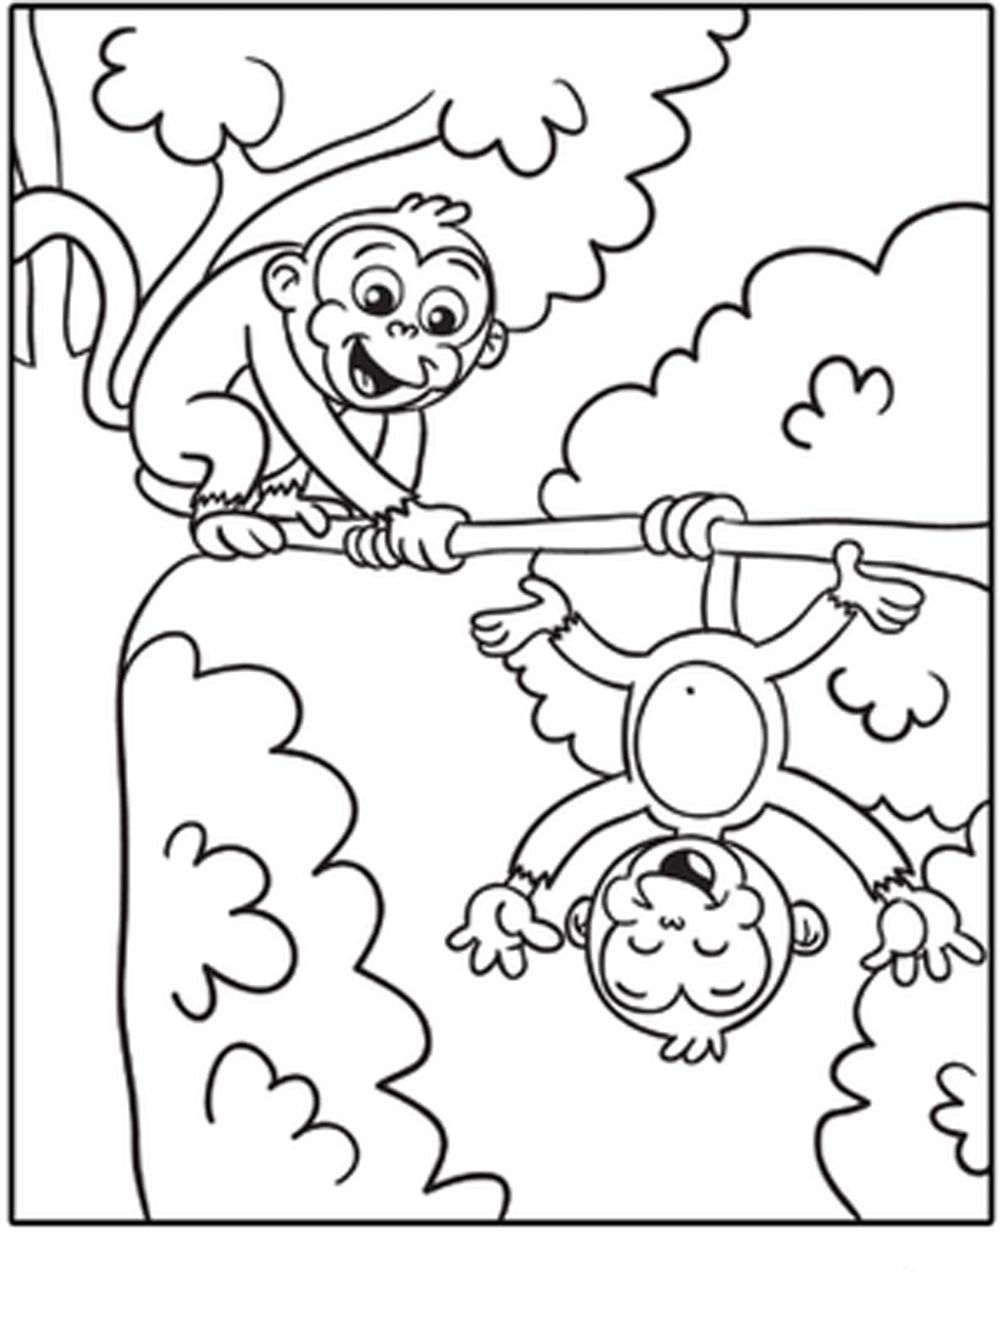 Monkey Coloring Pages For Kids Free Coloring Sheets Monkey Coloring Pages Printable Coloring Pages Animal Coloring Pages